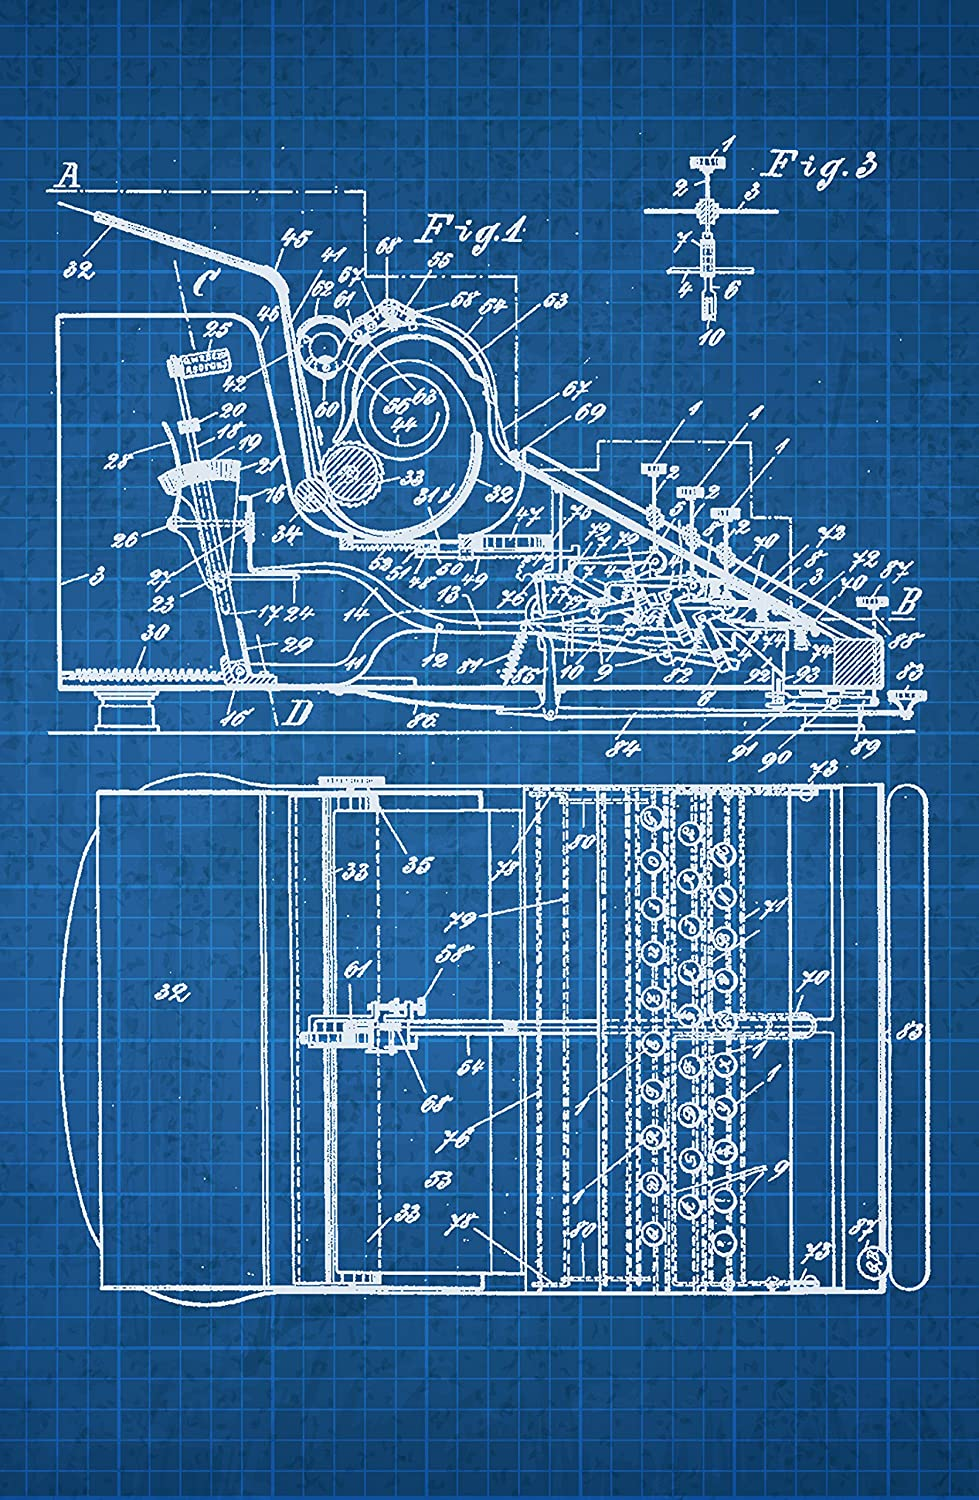 Amazon.com: Typewriter on White on Blue Graph - Patents - 24x16 ...